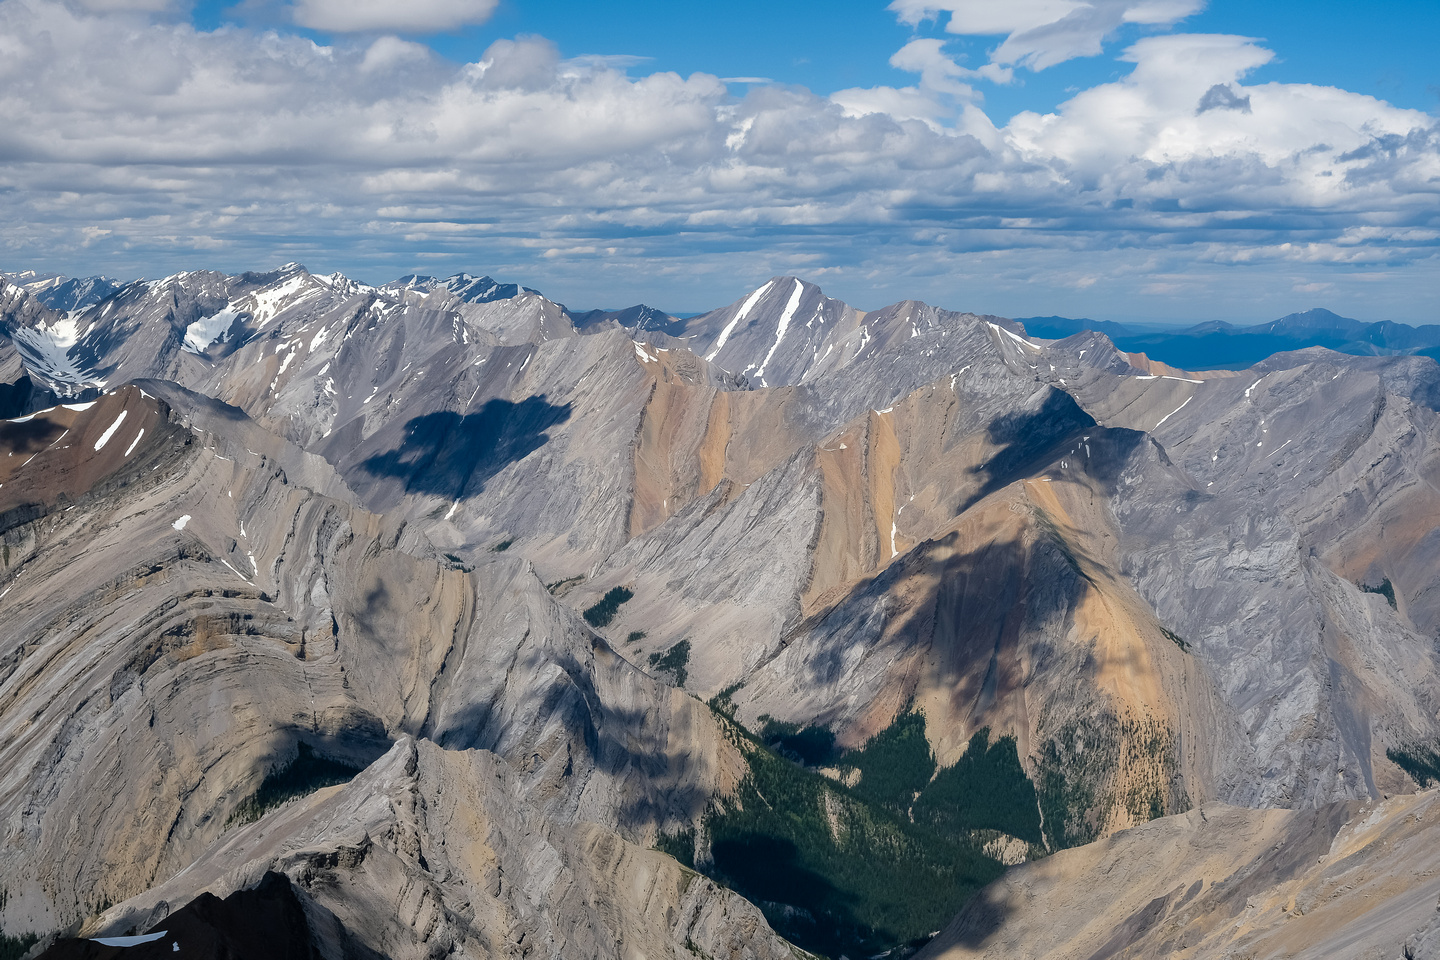 Opabin Mountain and Rustler Peak (R).